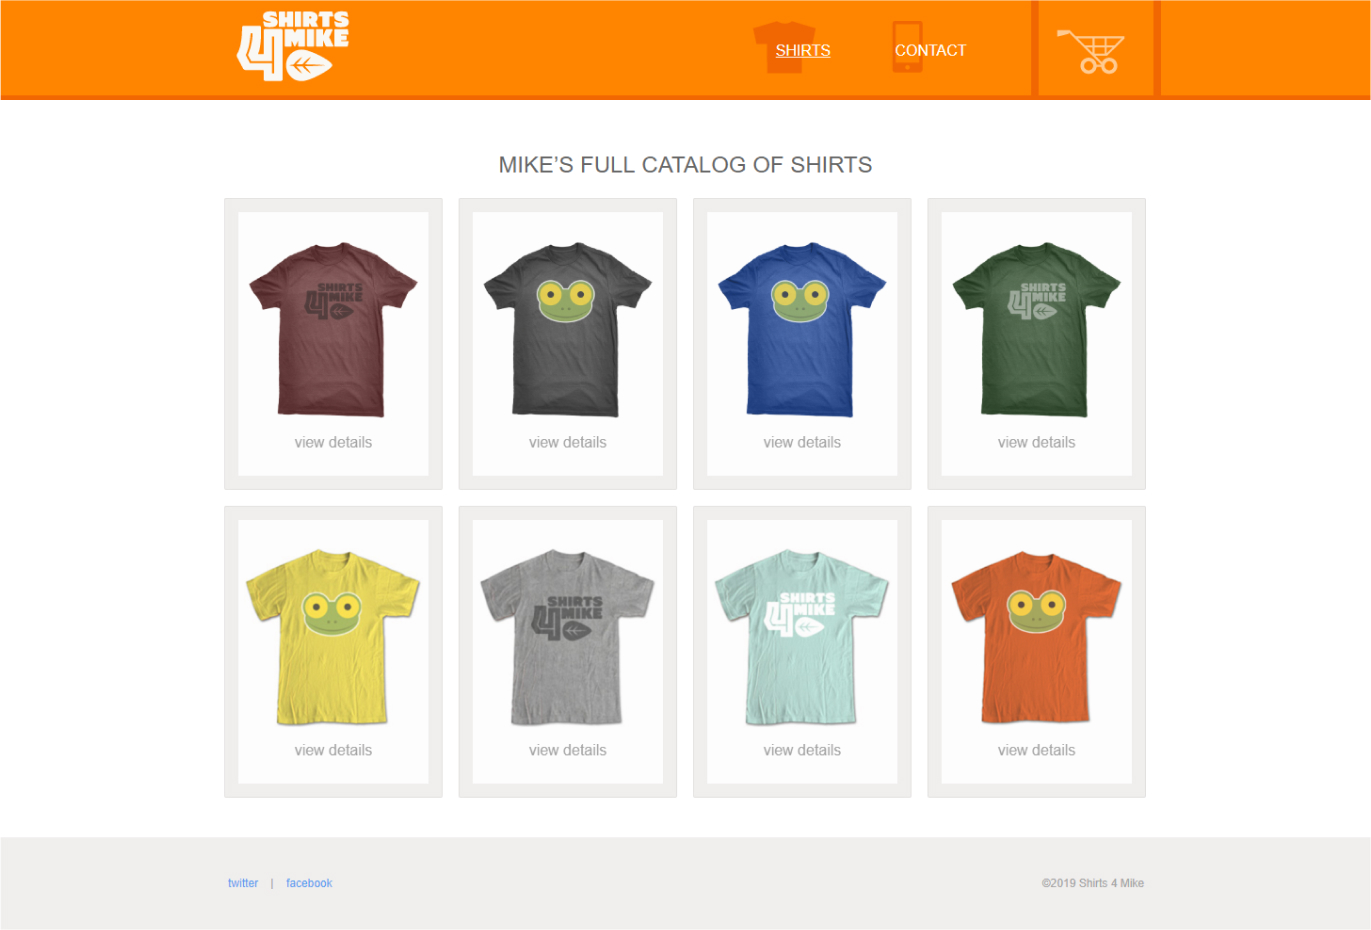 The Shirts page.